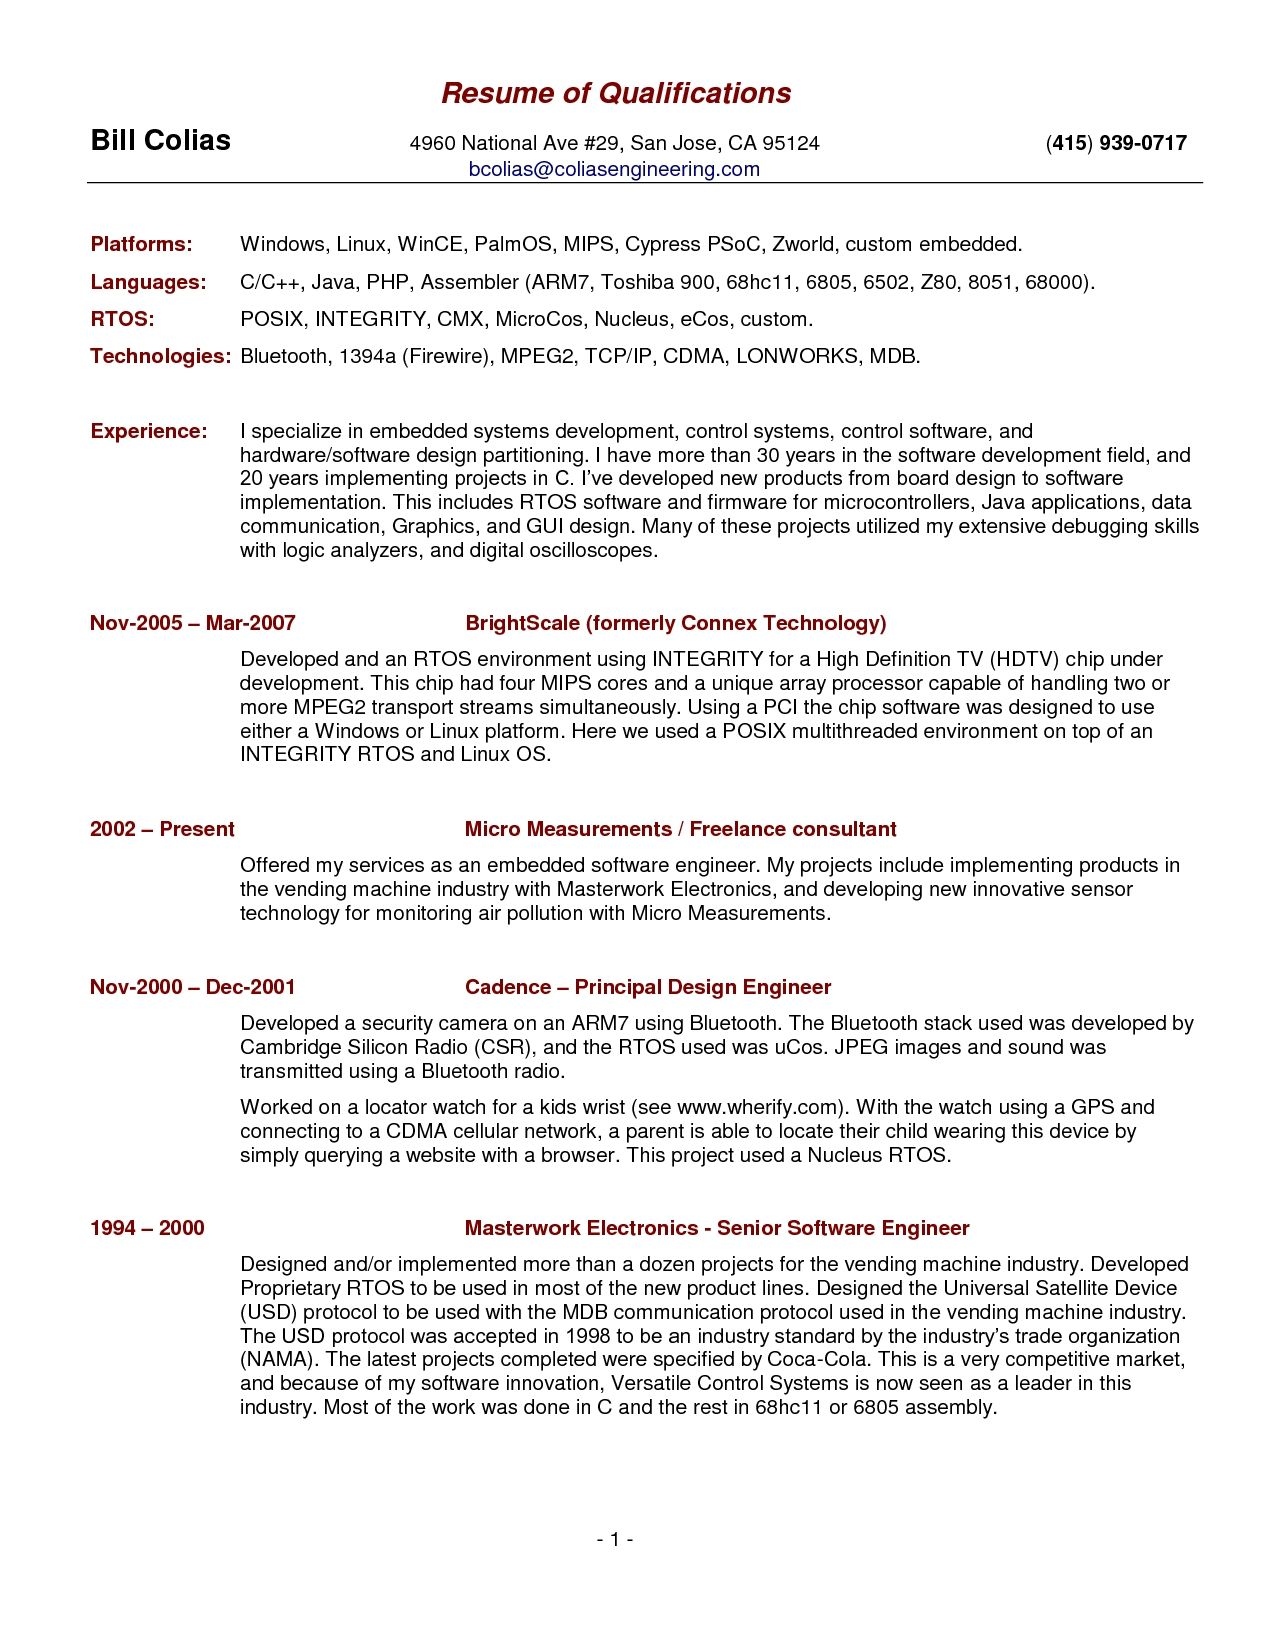 qualifications for a resume examples feaaa new resume skills qualifications for a resume examples 7f8ea3a2a new resume skills and qualifications examples